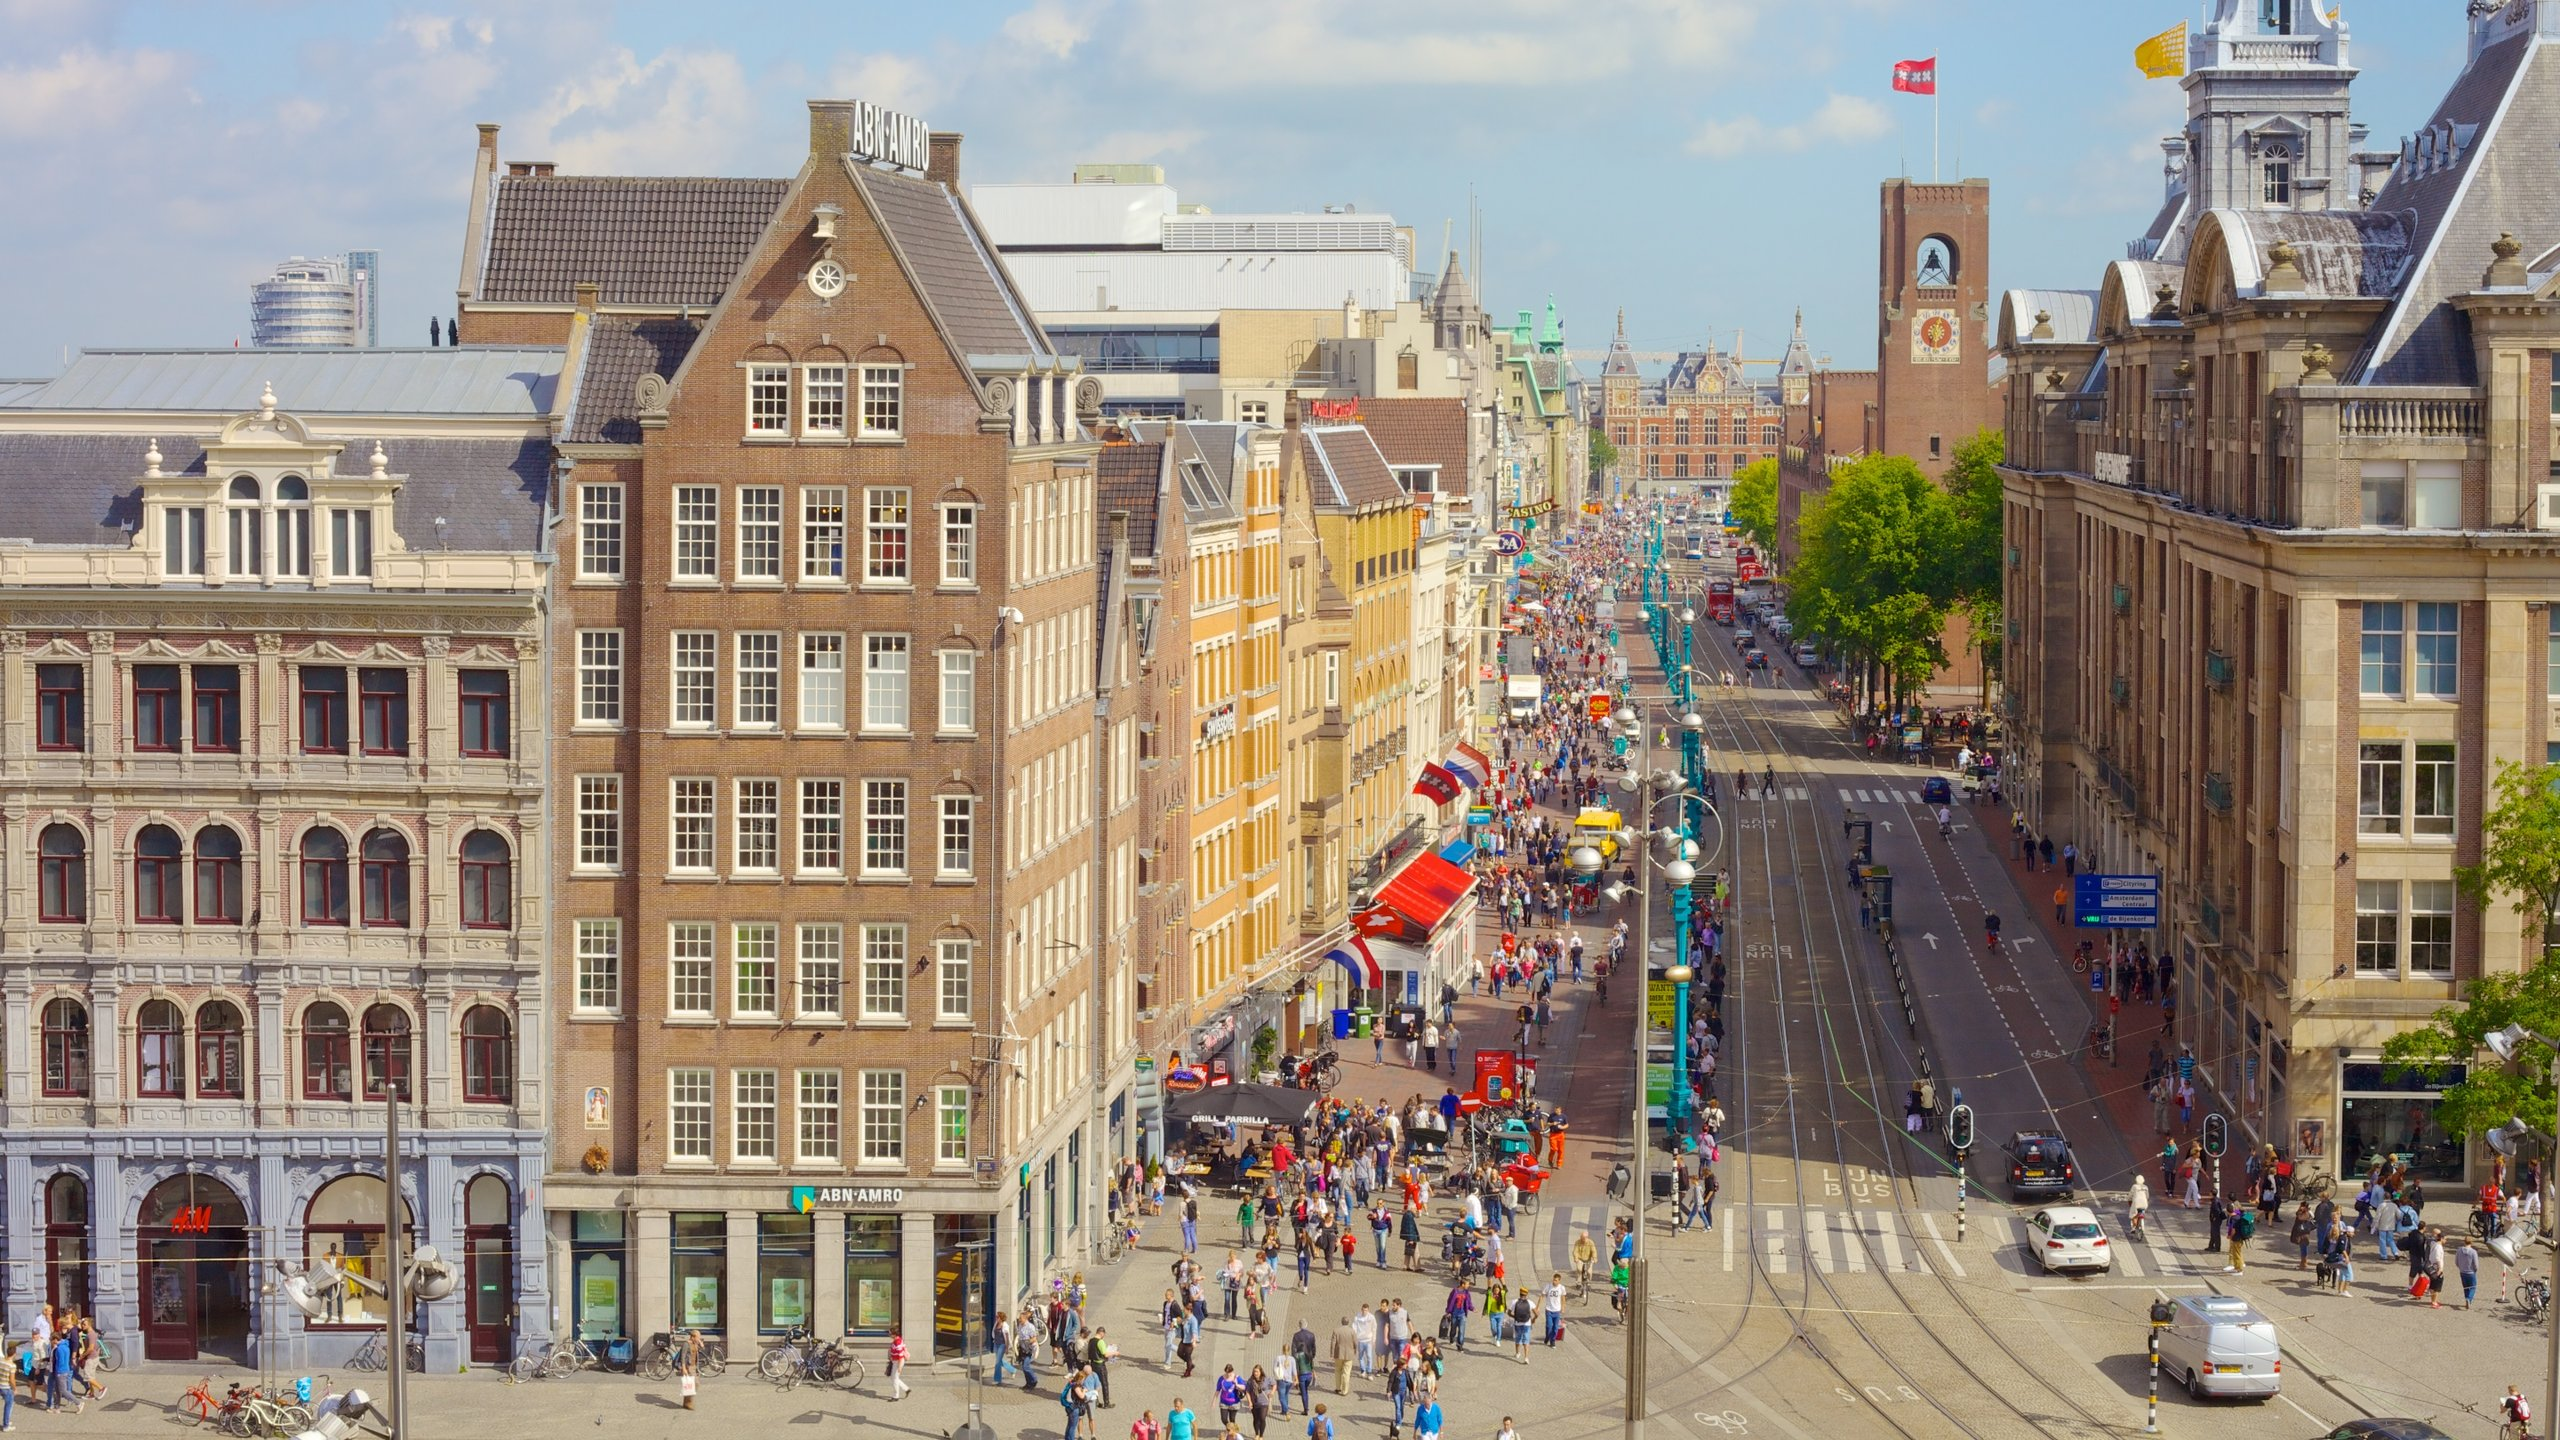 Visit Amsterdam's lively central square, a venue that's seen both protests and celebrations.